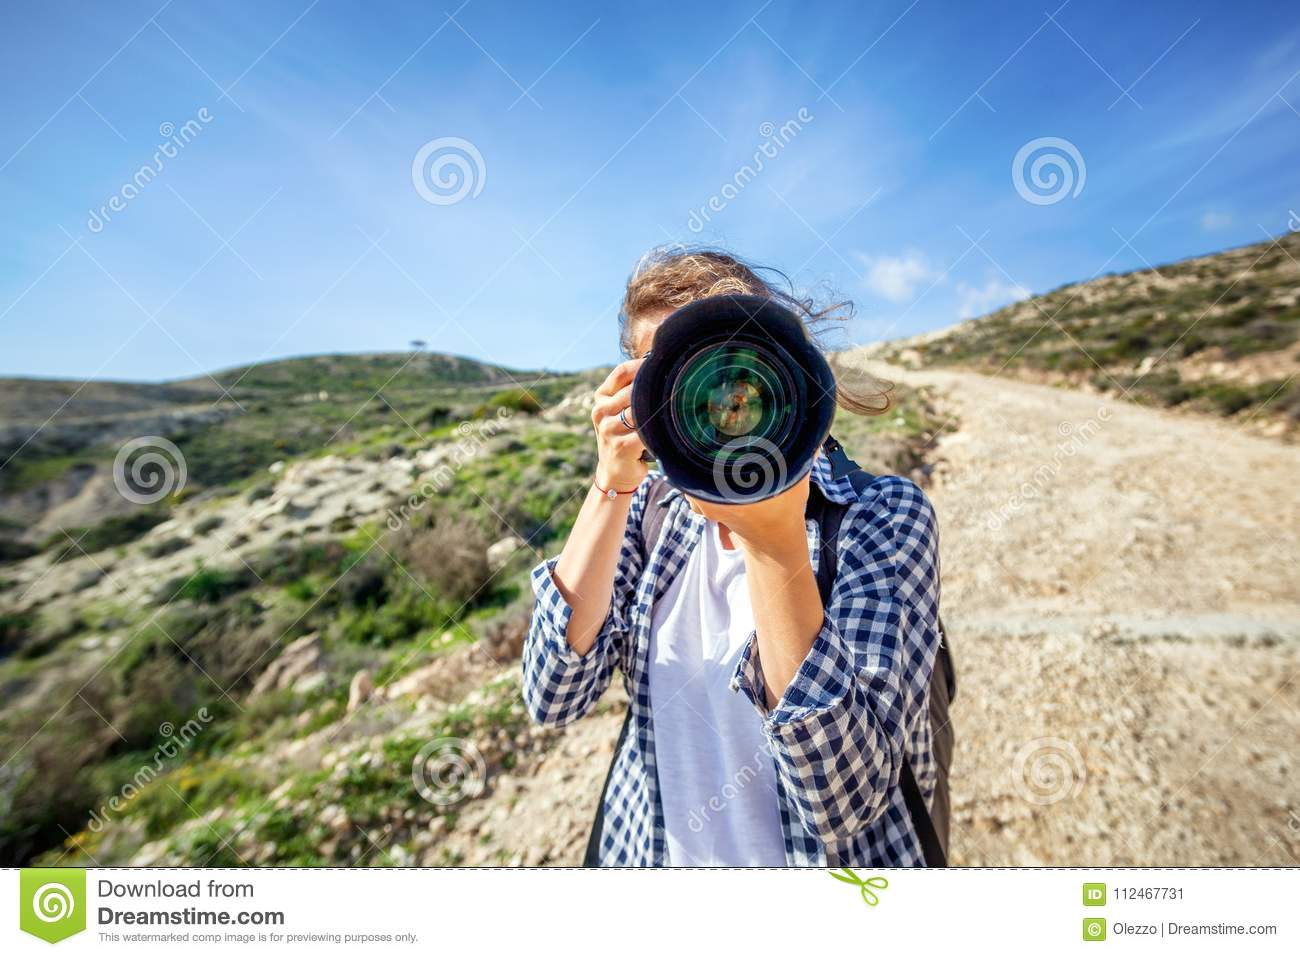 Girl traveler with a camera in hand, against a beautiful summer